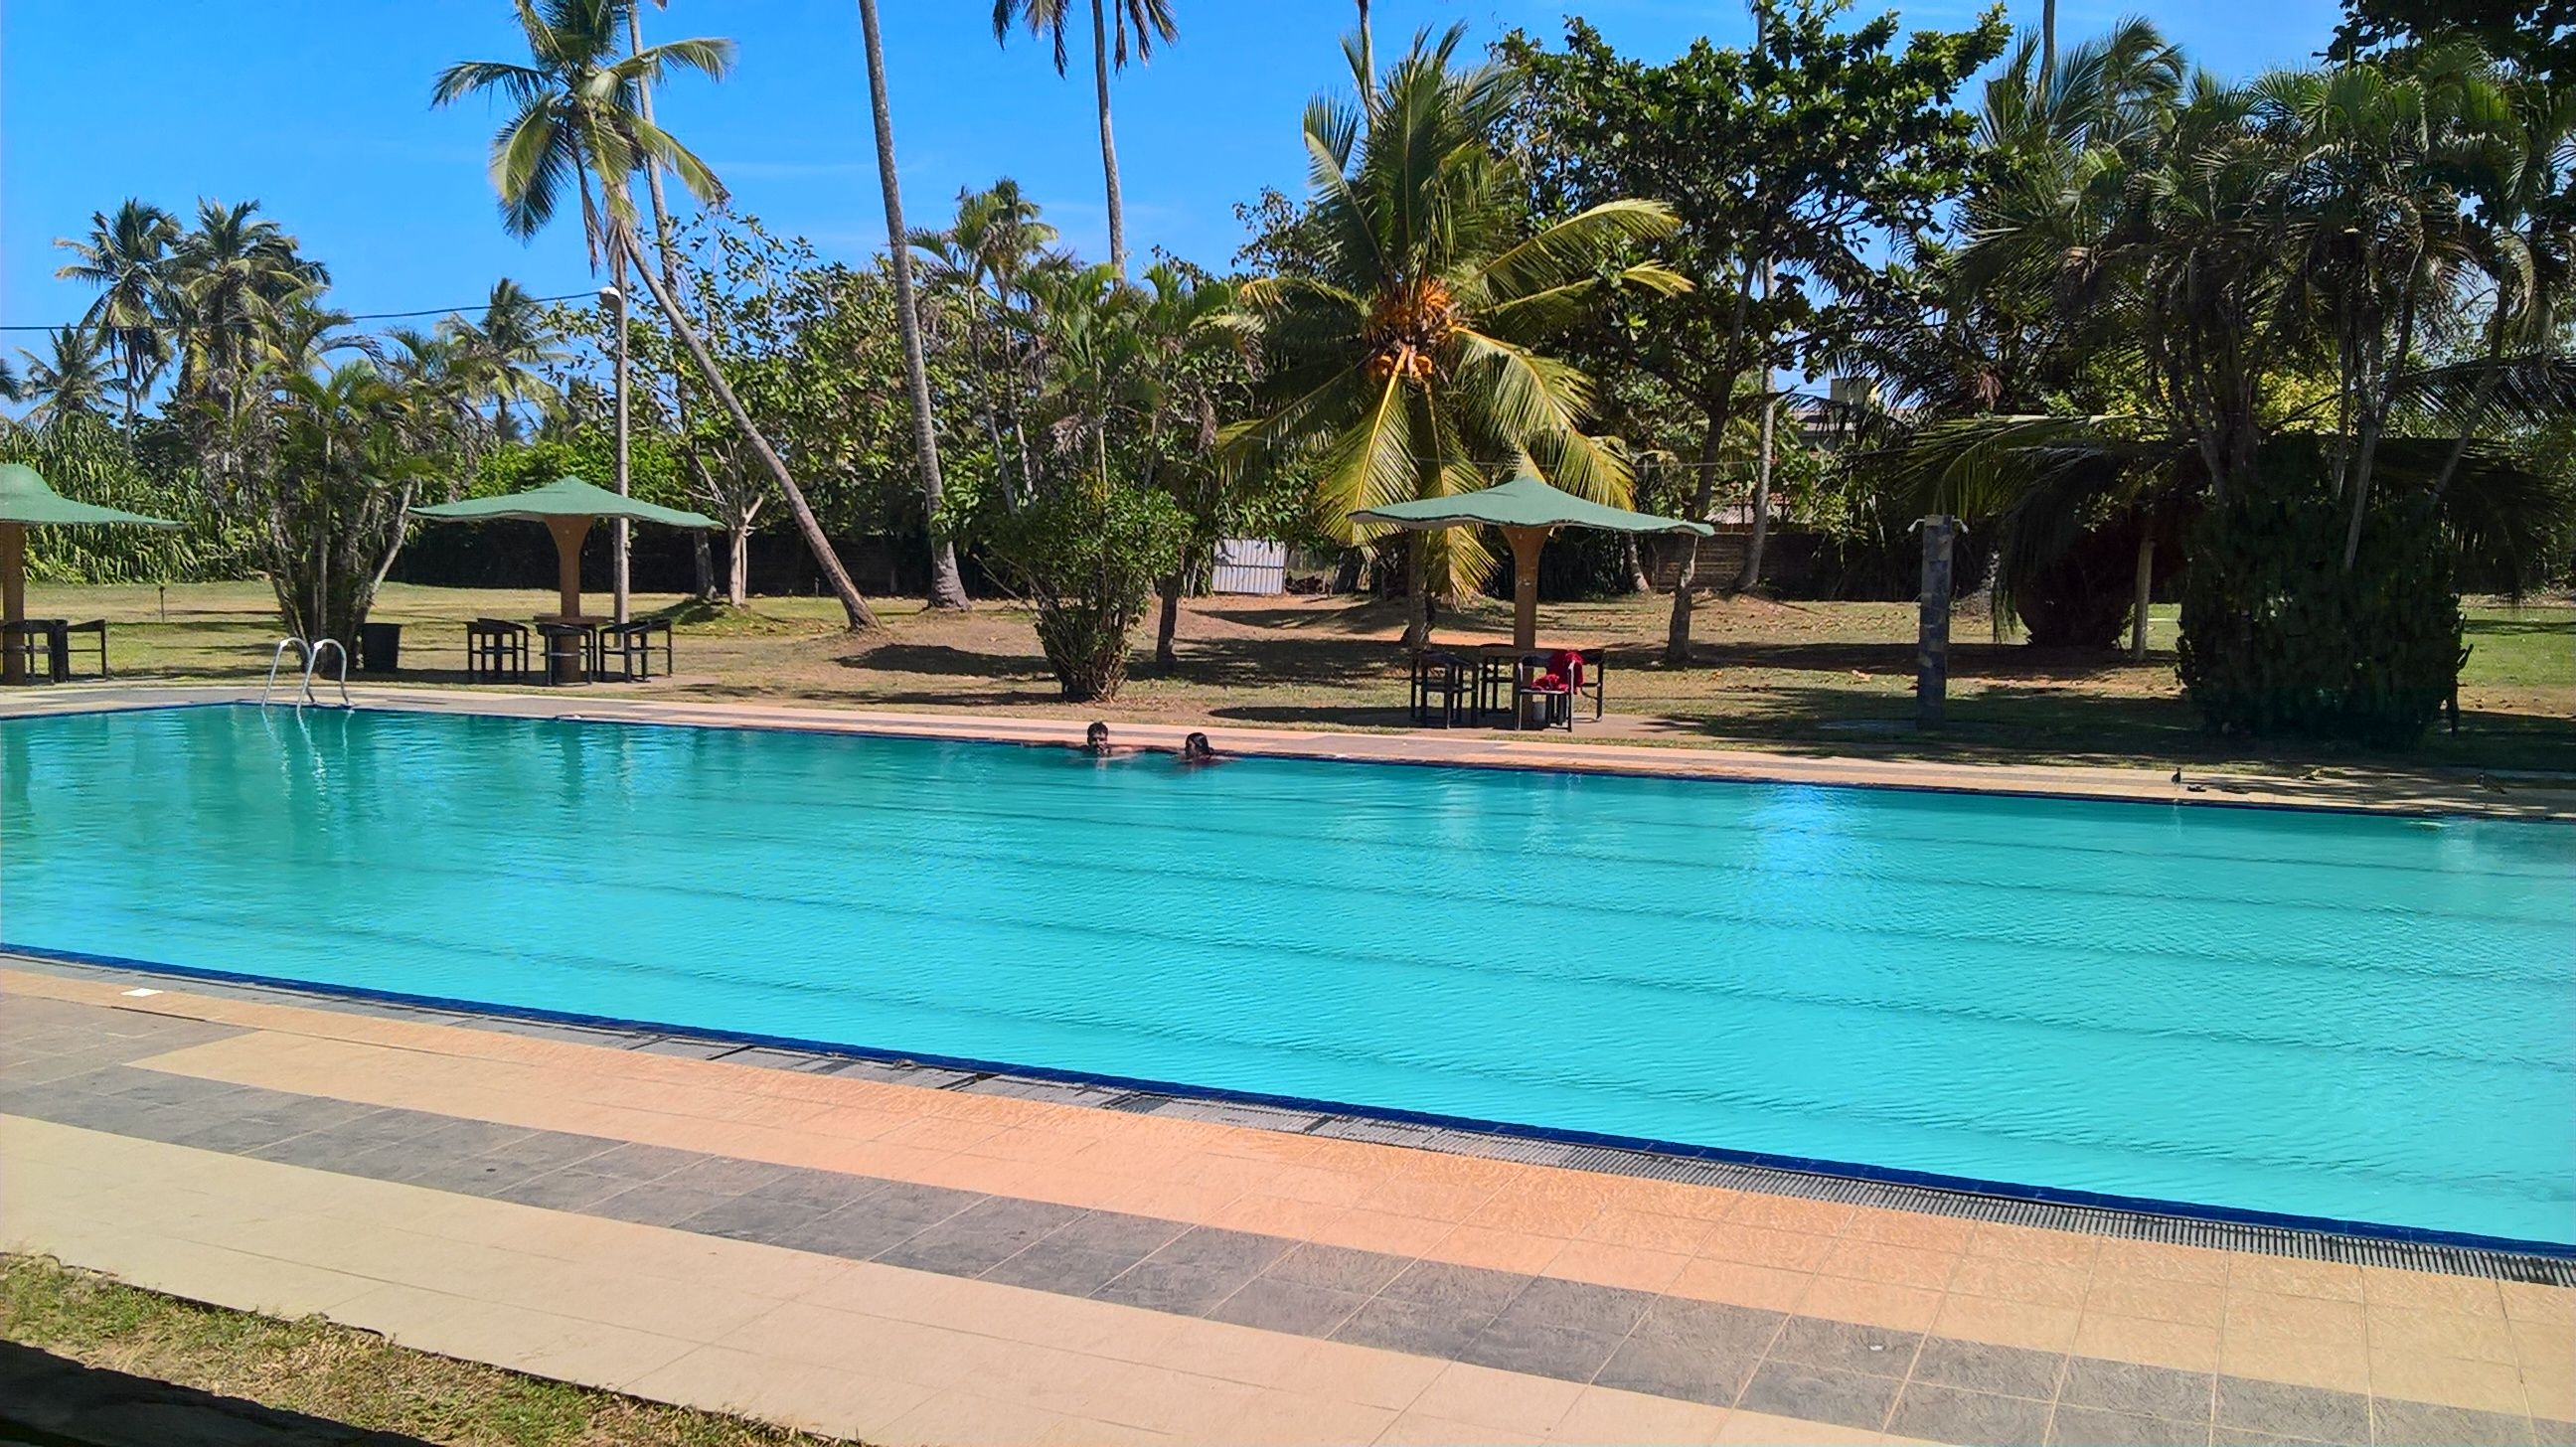 A Swimming Pool At A Hotel In Sri Lanka